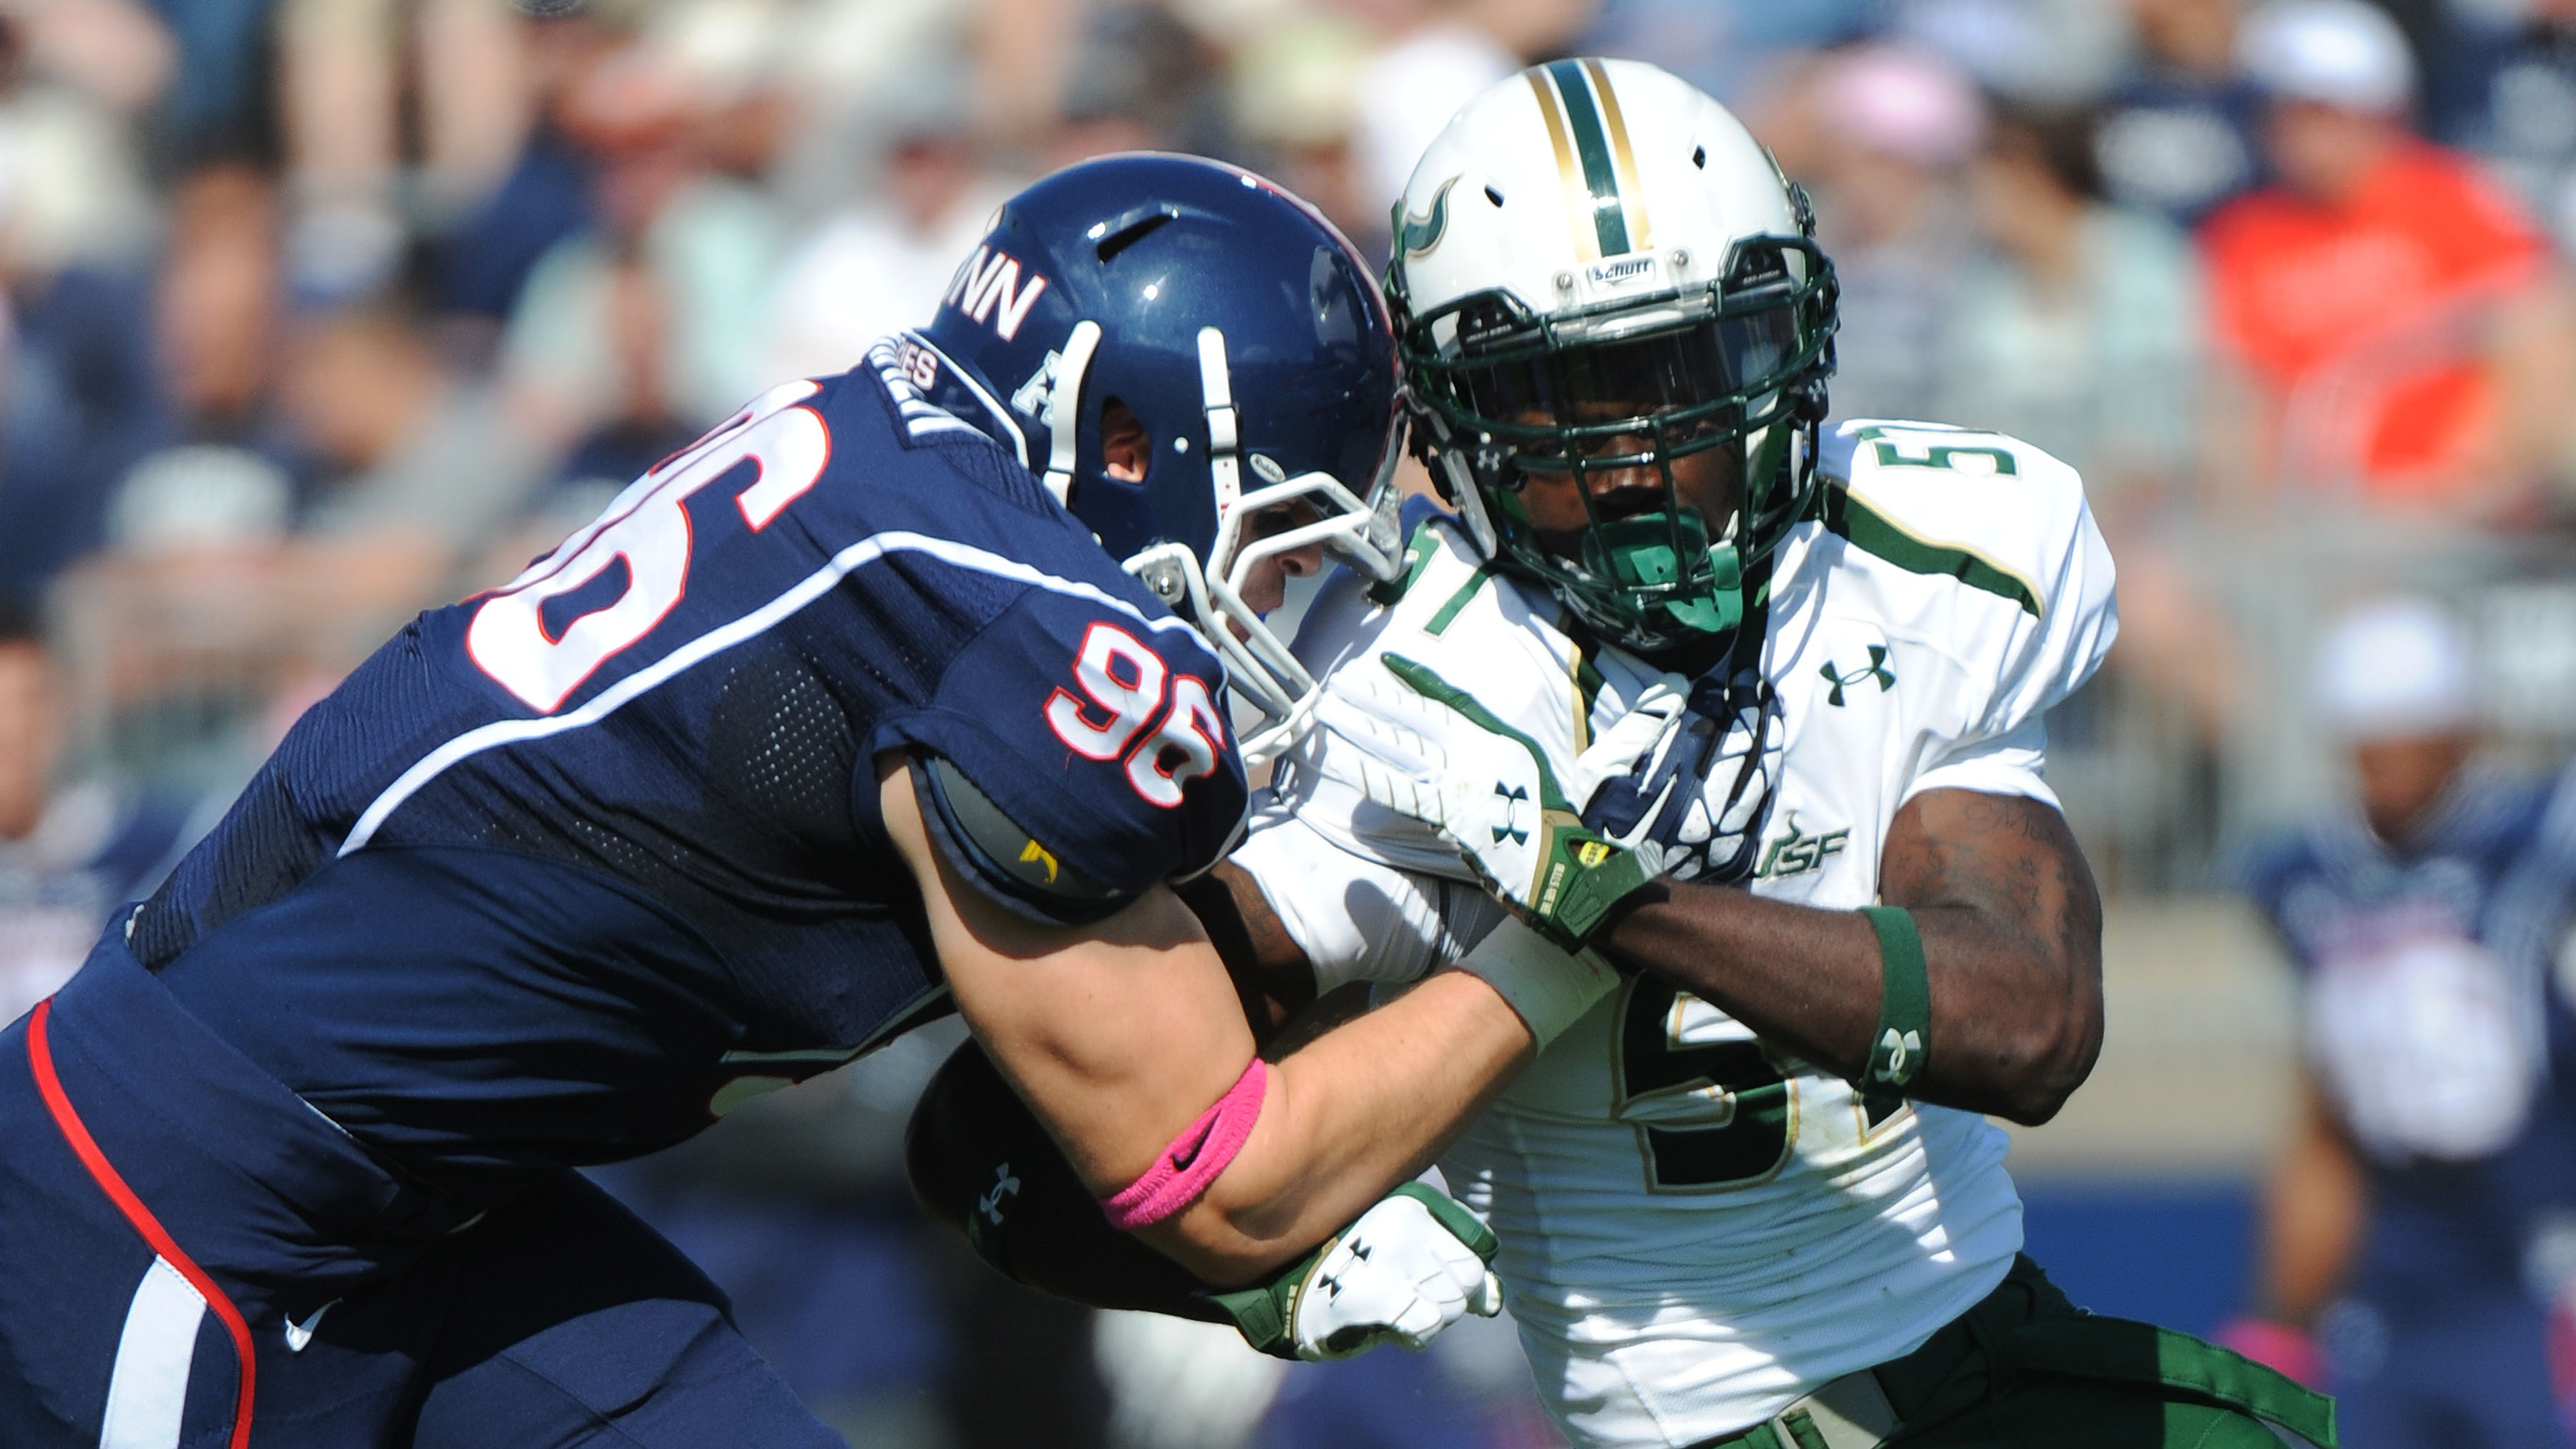 University of South Florida linebackers Nigel Harris (right) and Tashon Whitehurst have been suspended for two games of the 2015 season for violating team rules.